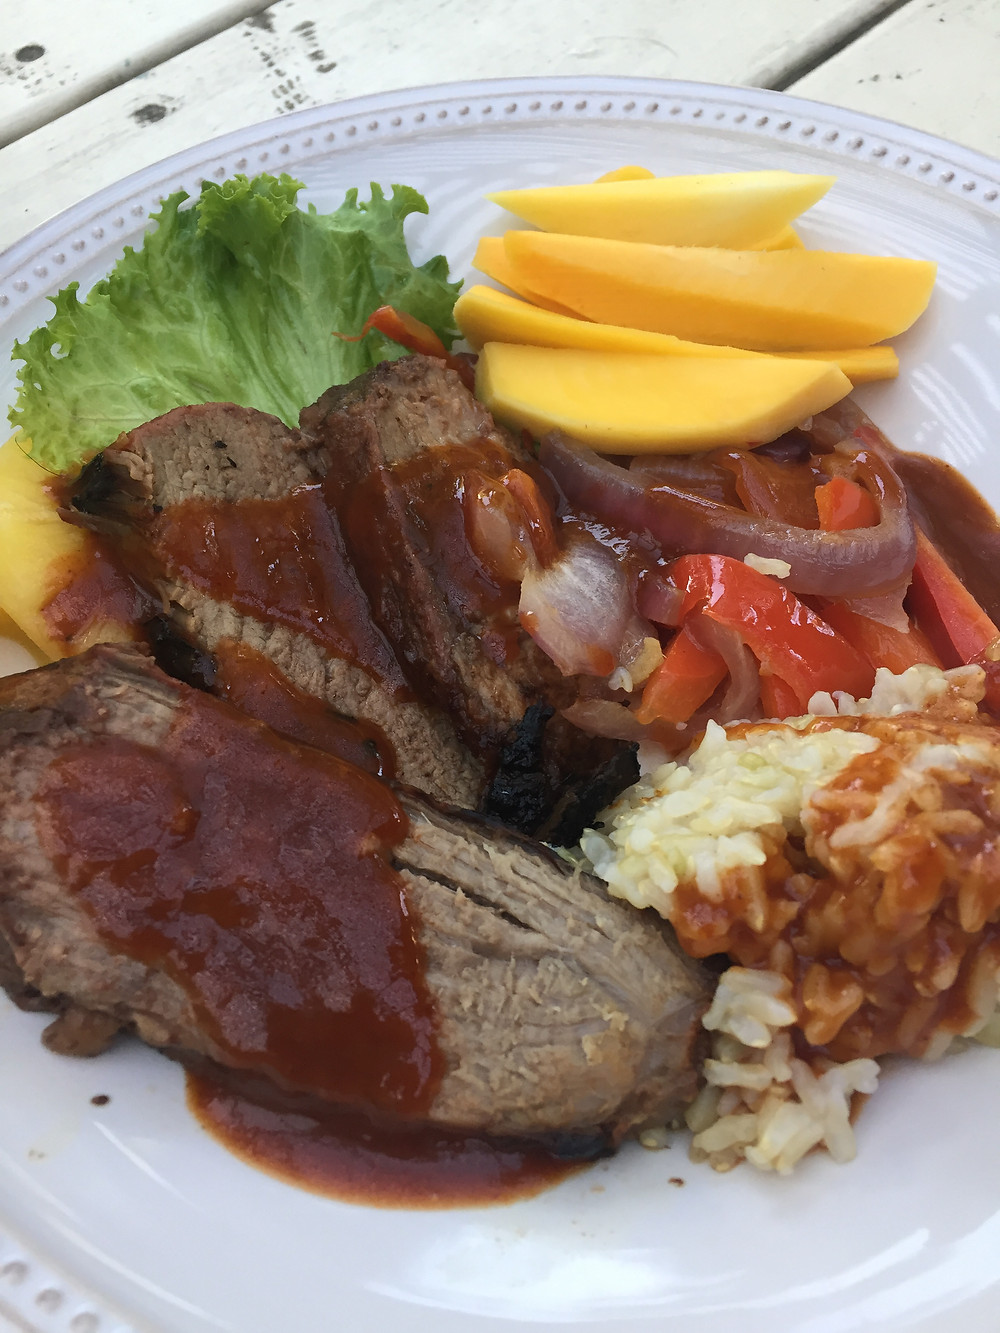 beef, rice, and fruit on a serving plate